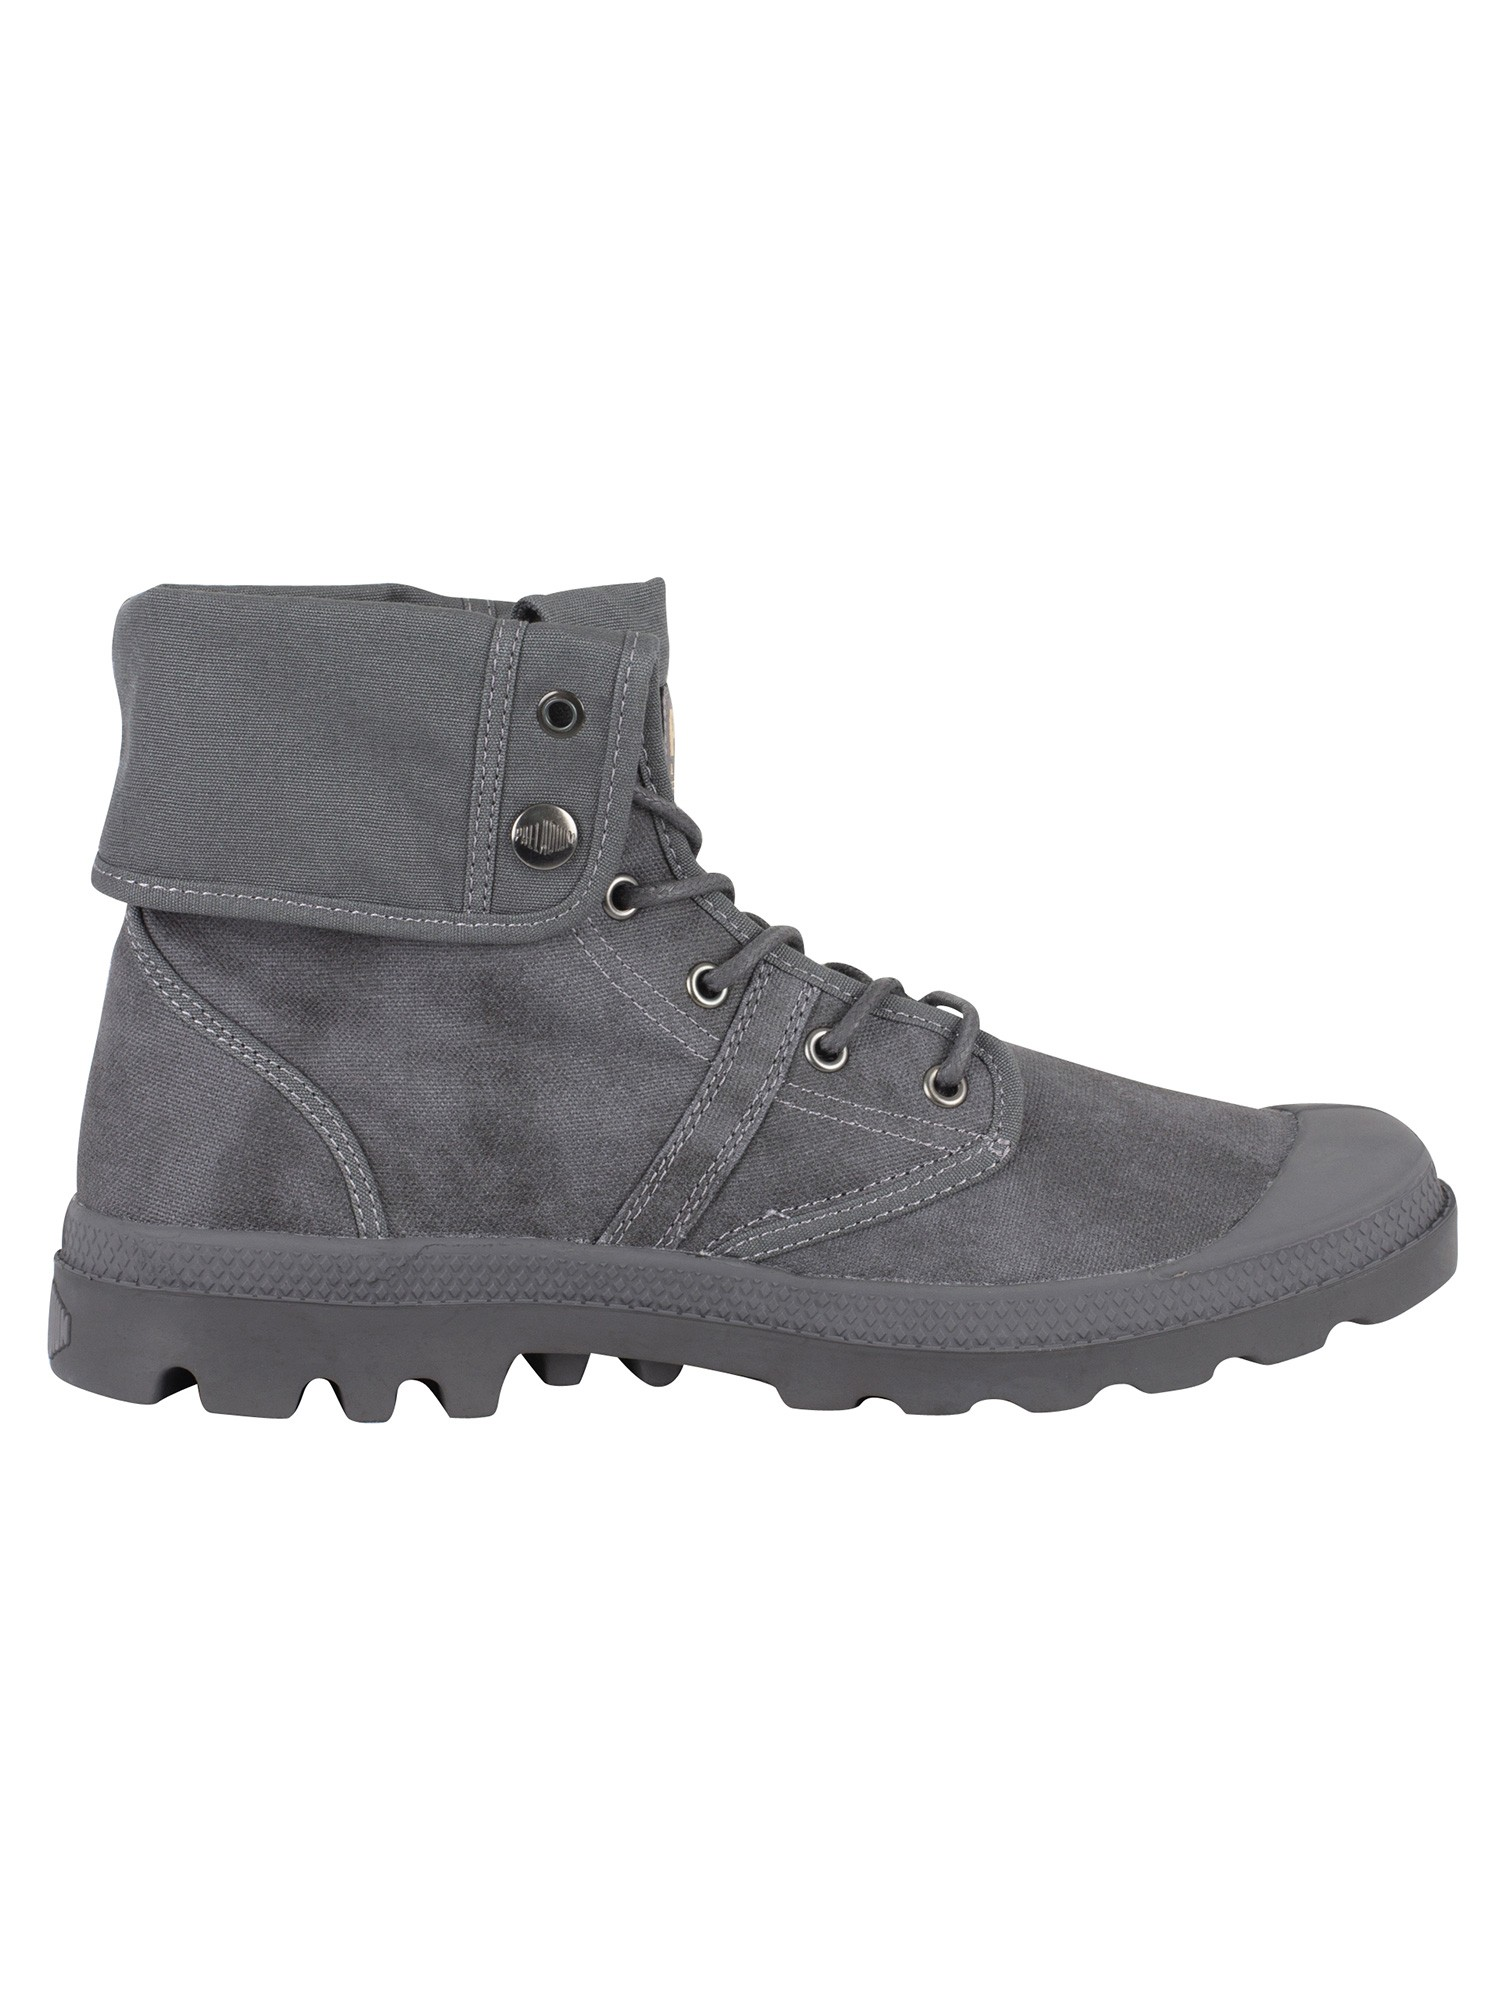 Palladium Pallabrouse Baggy Wax Boots - French Metal/Forged Iron